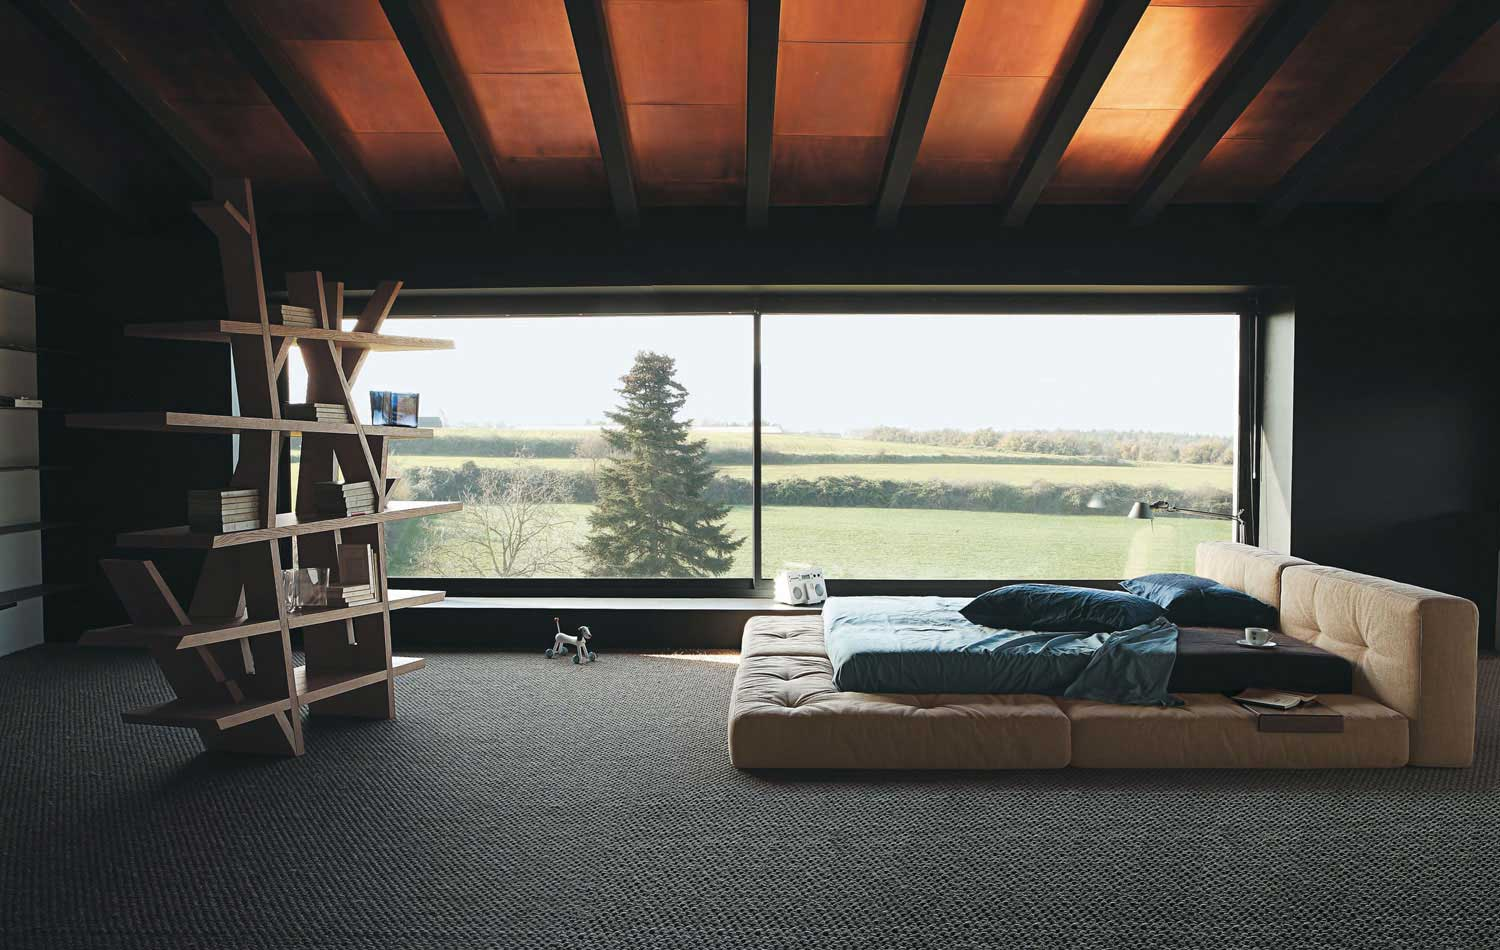 Bedrooms from roche bobois - Cool room ideas for guys ...